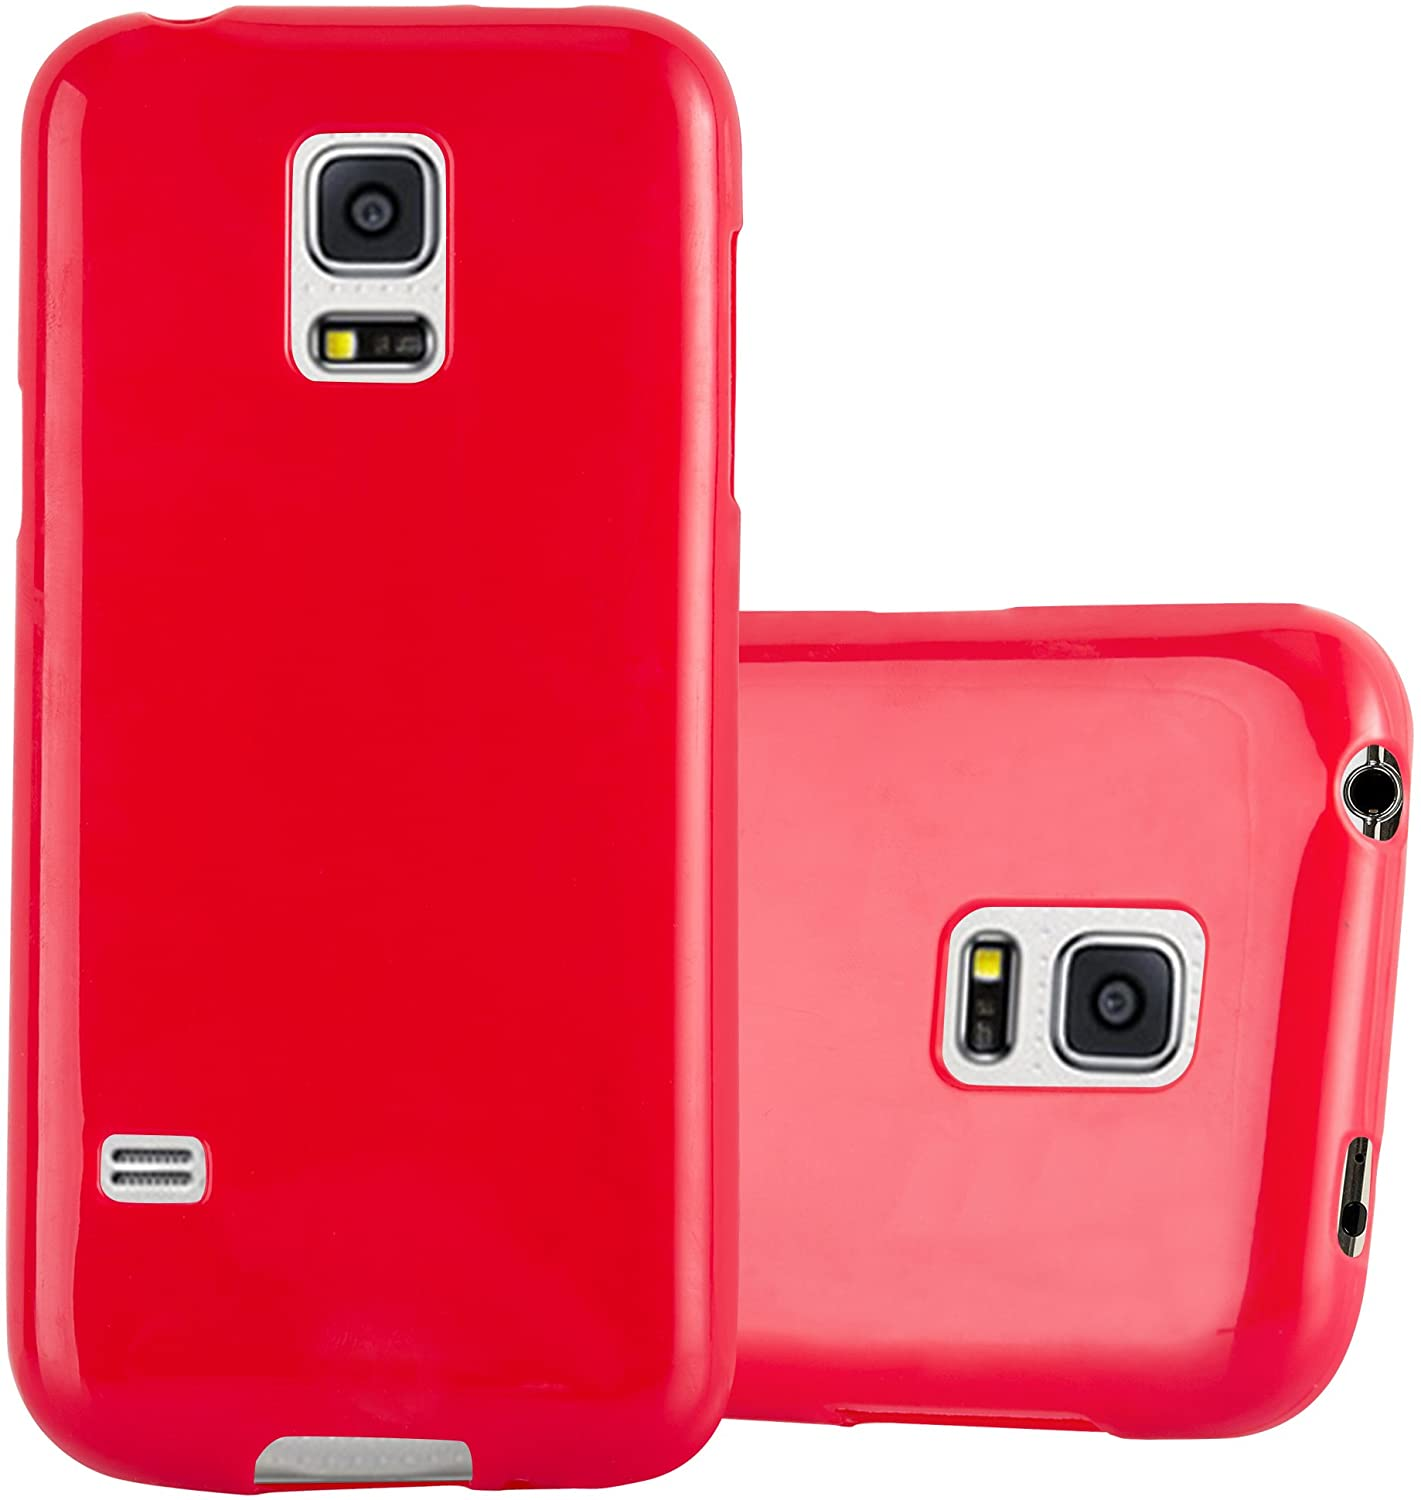 Cadorabo Case Works with Samsung Galaxy S5 Mini / S5 Mini DUOS in Jelly RED - Shockproof and Scratch Resistant TPU Silicone Cover - Ultra Slim Protective Gel Shell Bumper Back Skin